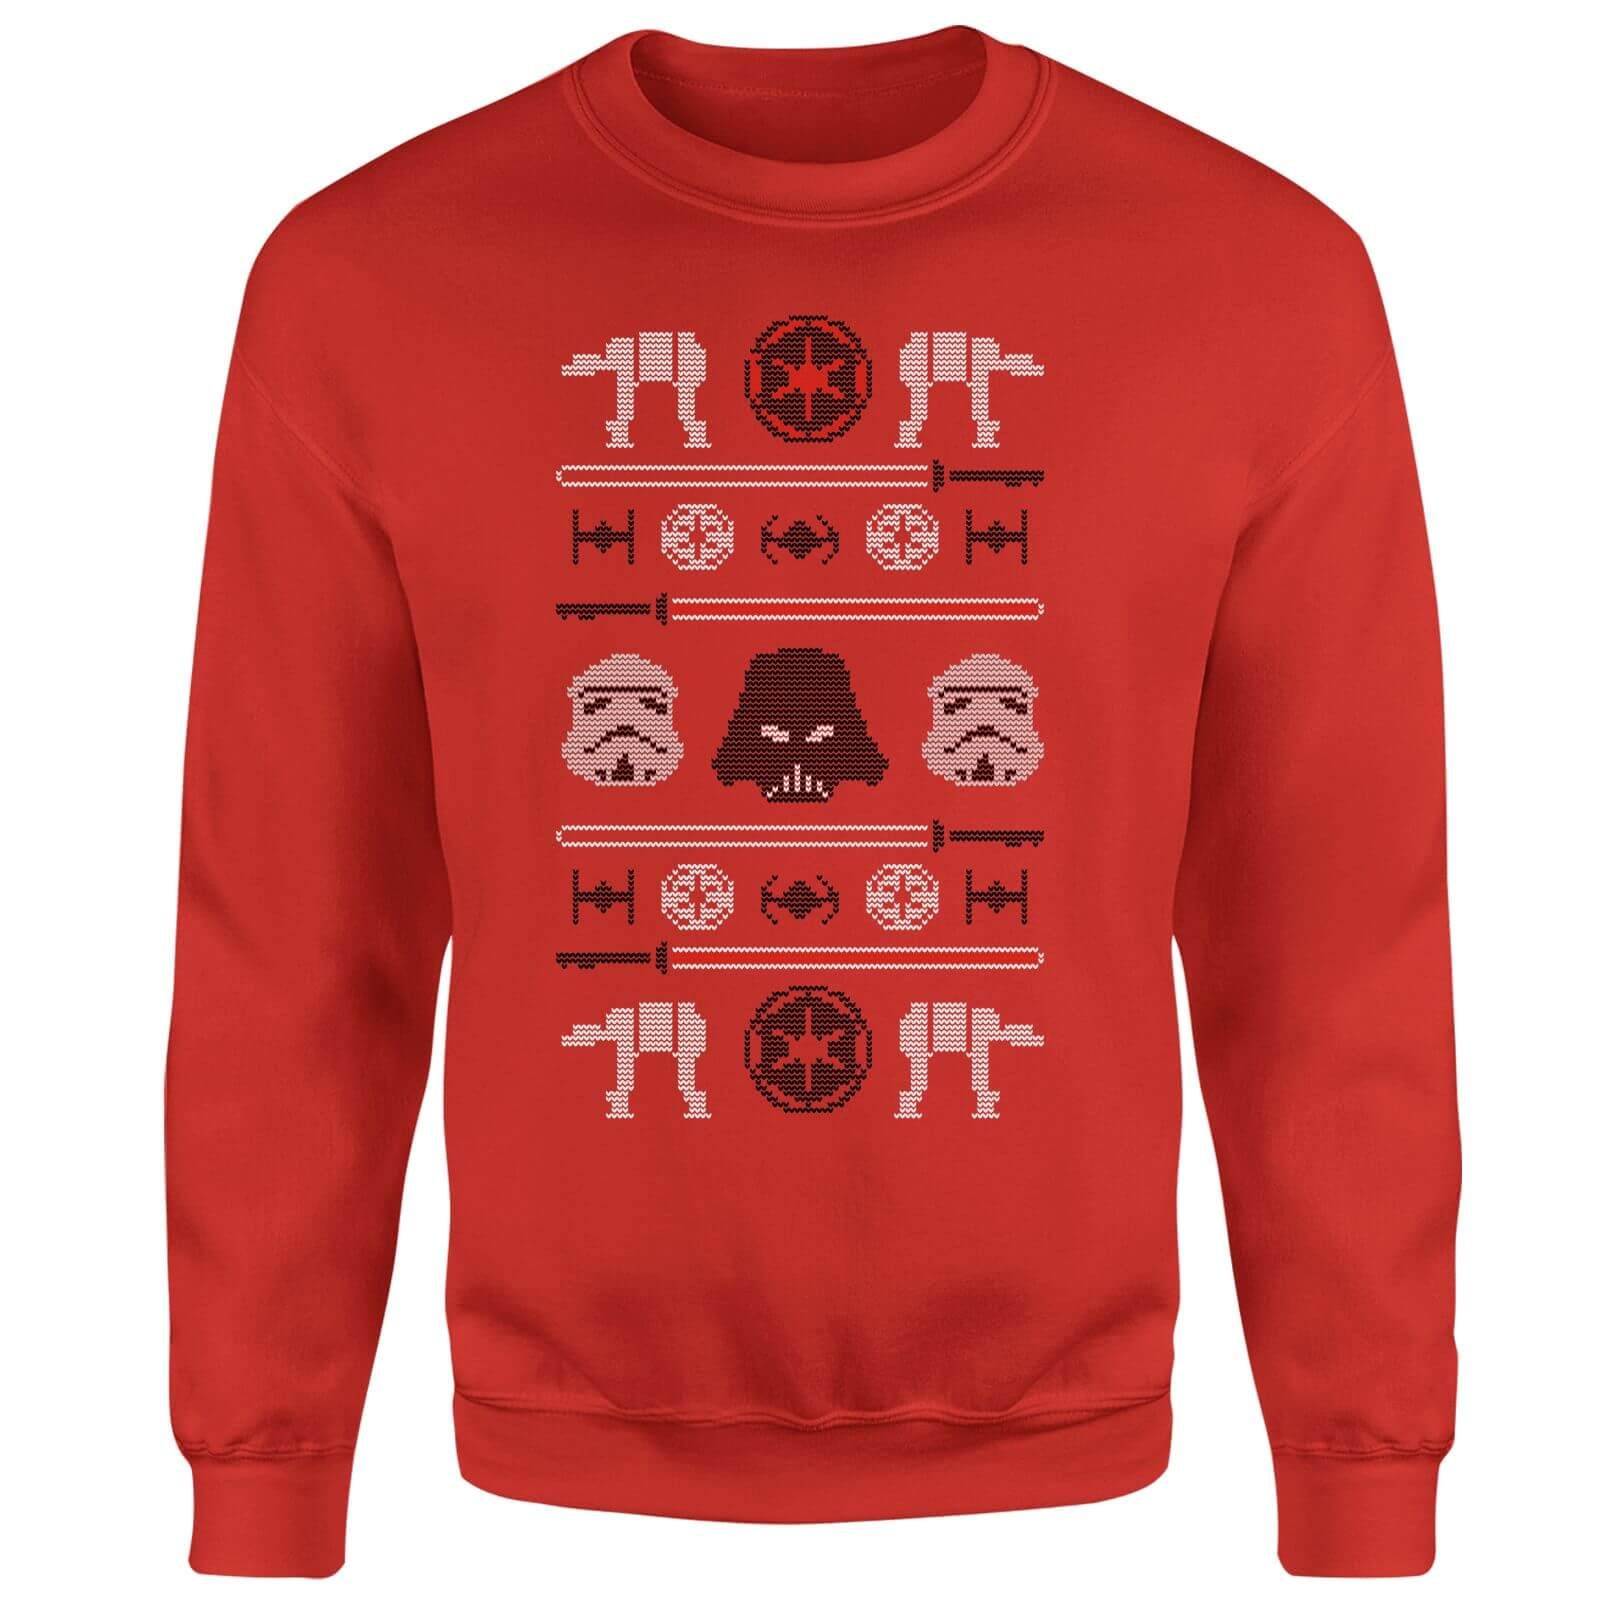 Star Wars Imperial Knit Red Christmas Sweatshirt